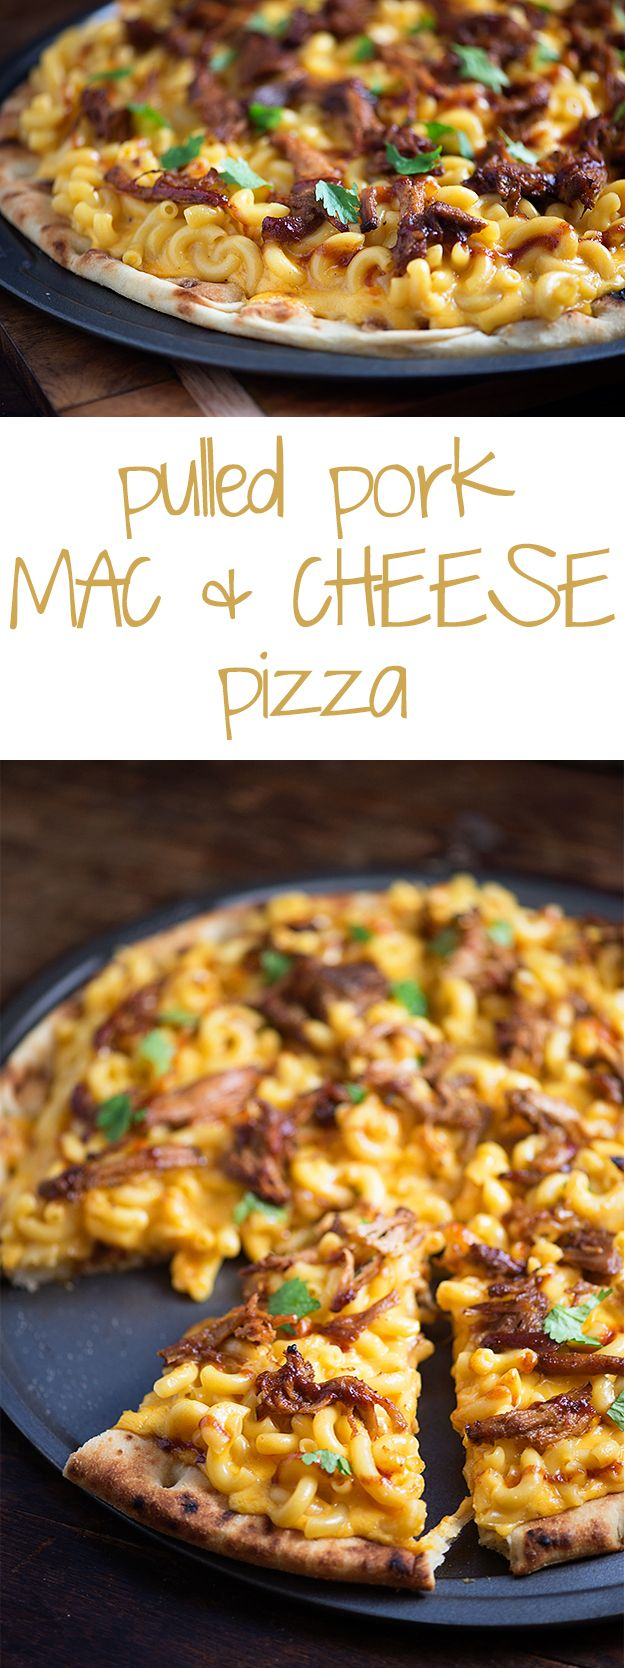 If you have leftover pulled pork, this recipe is for you! A simple creamy stove top macaroni and cheese pizza is the perfect use for that crock pot pulled pork!